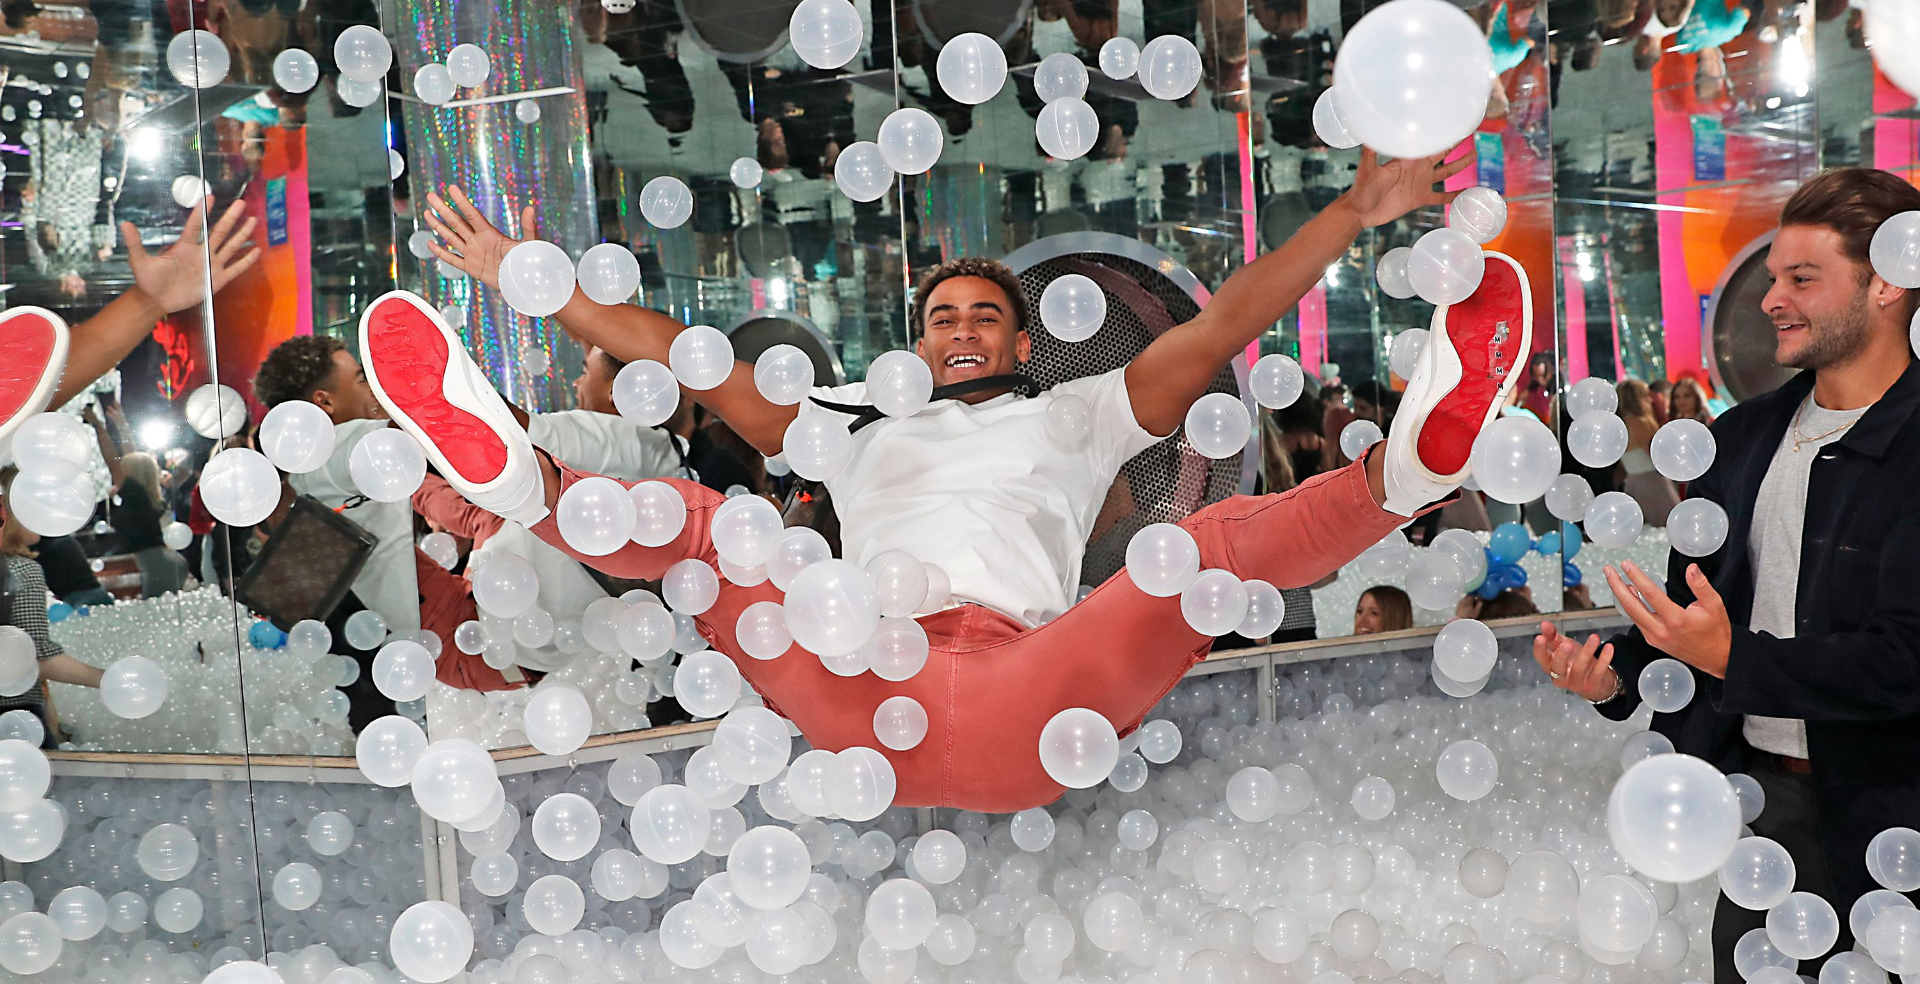 Easter Bank Holiday Brunch & Ball Pit Extravaganza @ Ballie Ballerson Soho